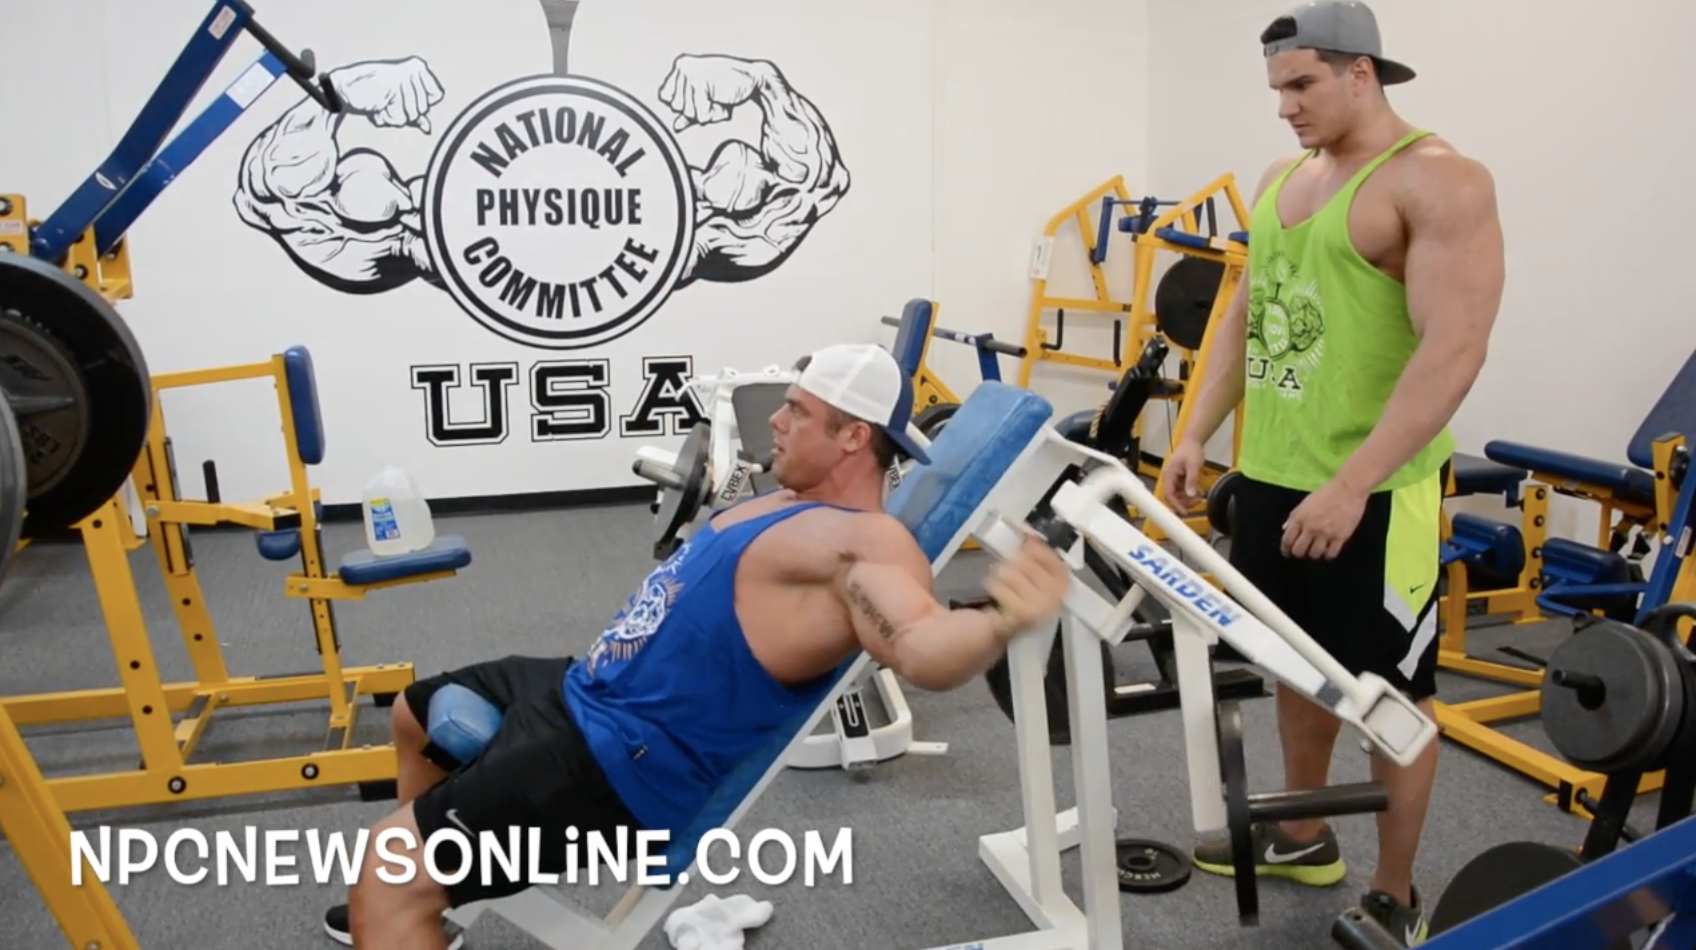 NPC Bodybuilder's Silas Merkel & Eric Wood Chest Workout Video